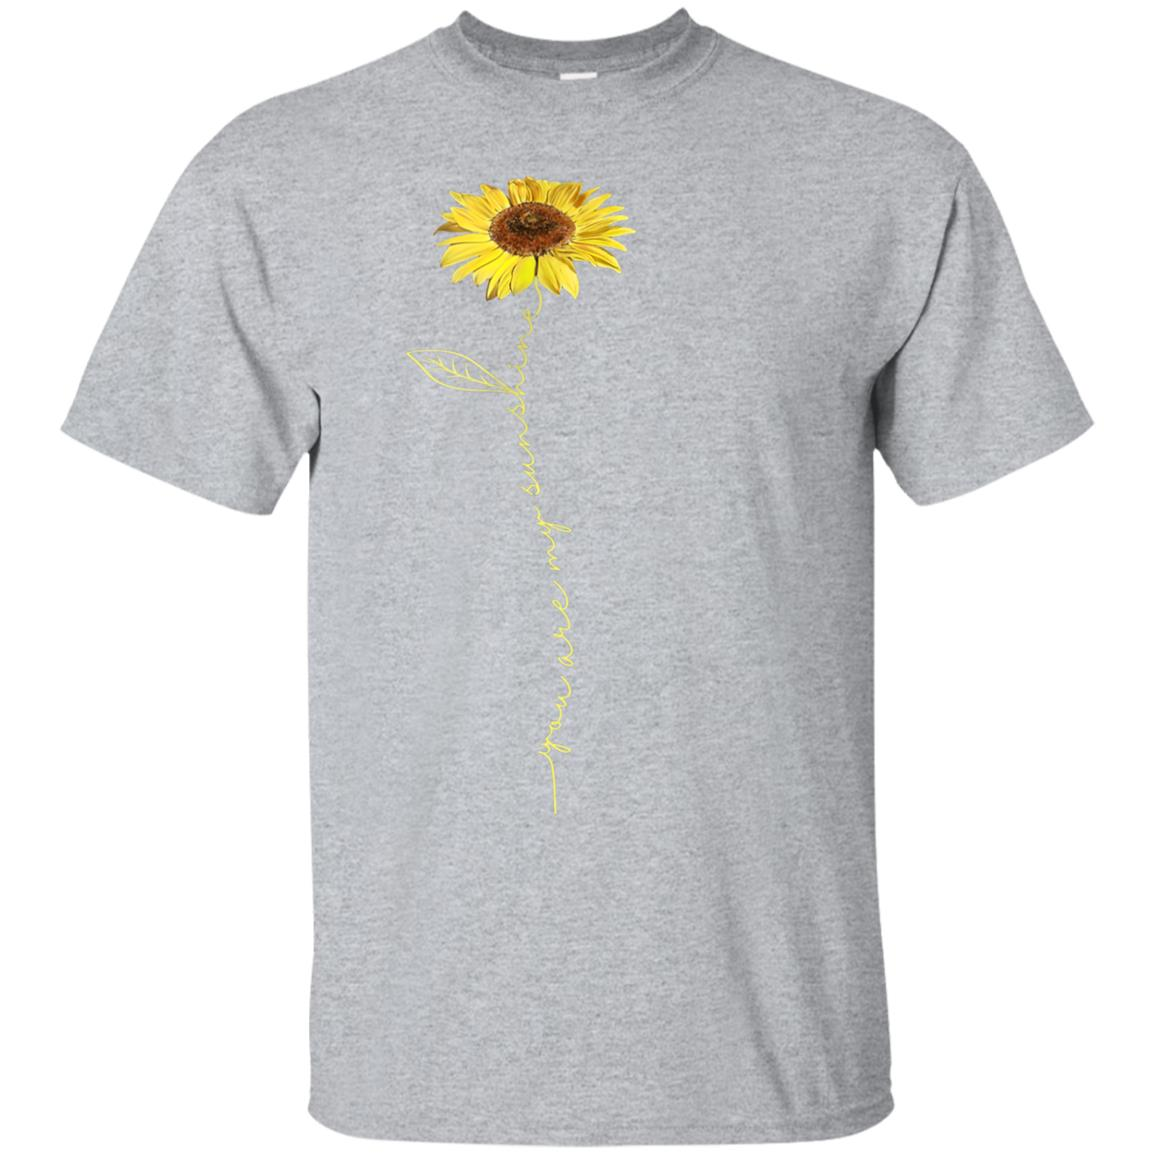 You Are My Sunshine Hippie Sunflower Tshirt Gifts For Women 99promocode